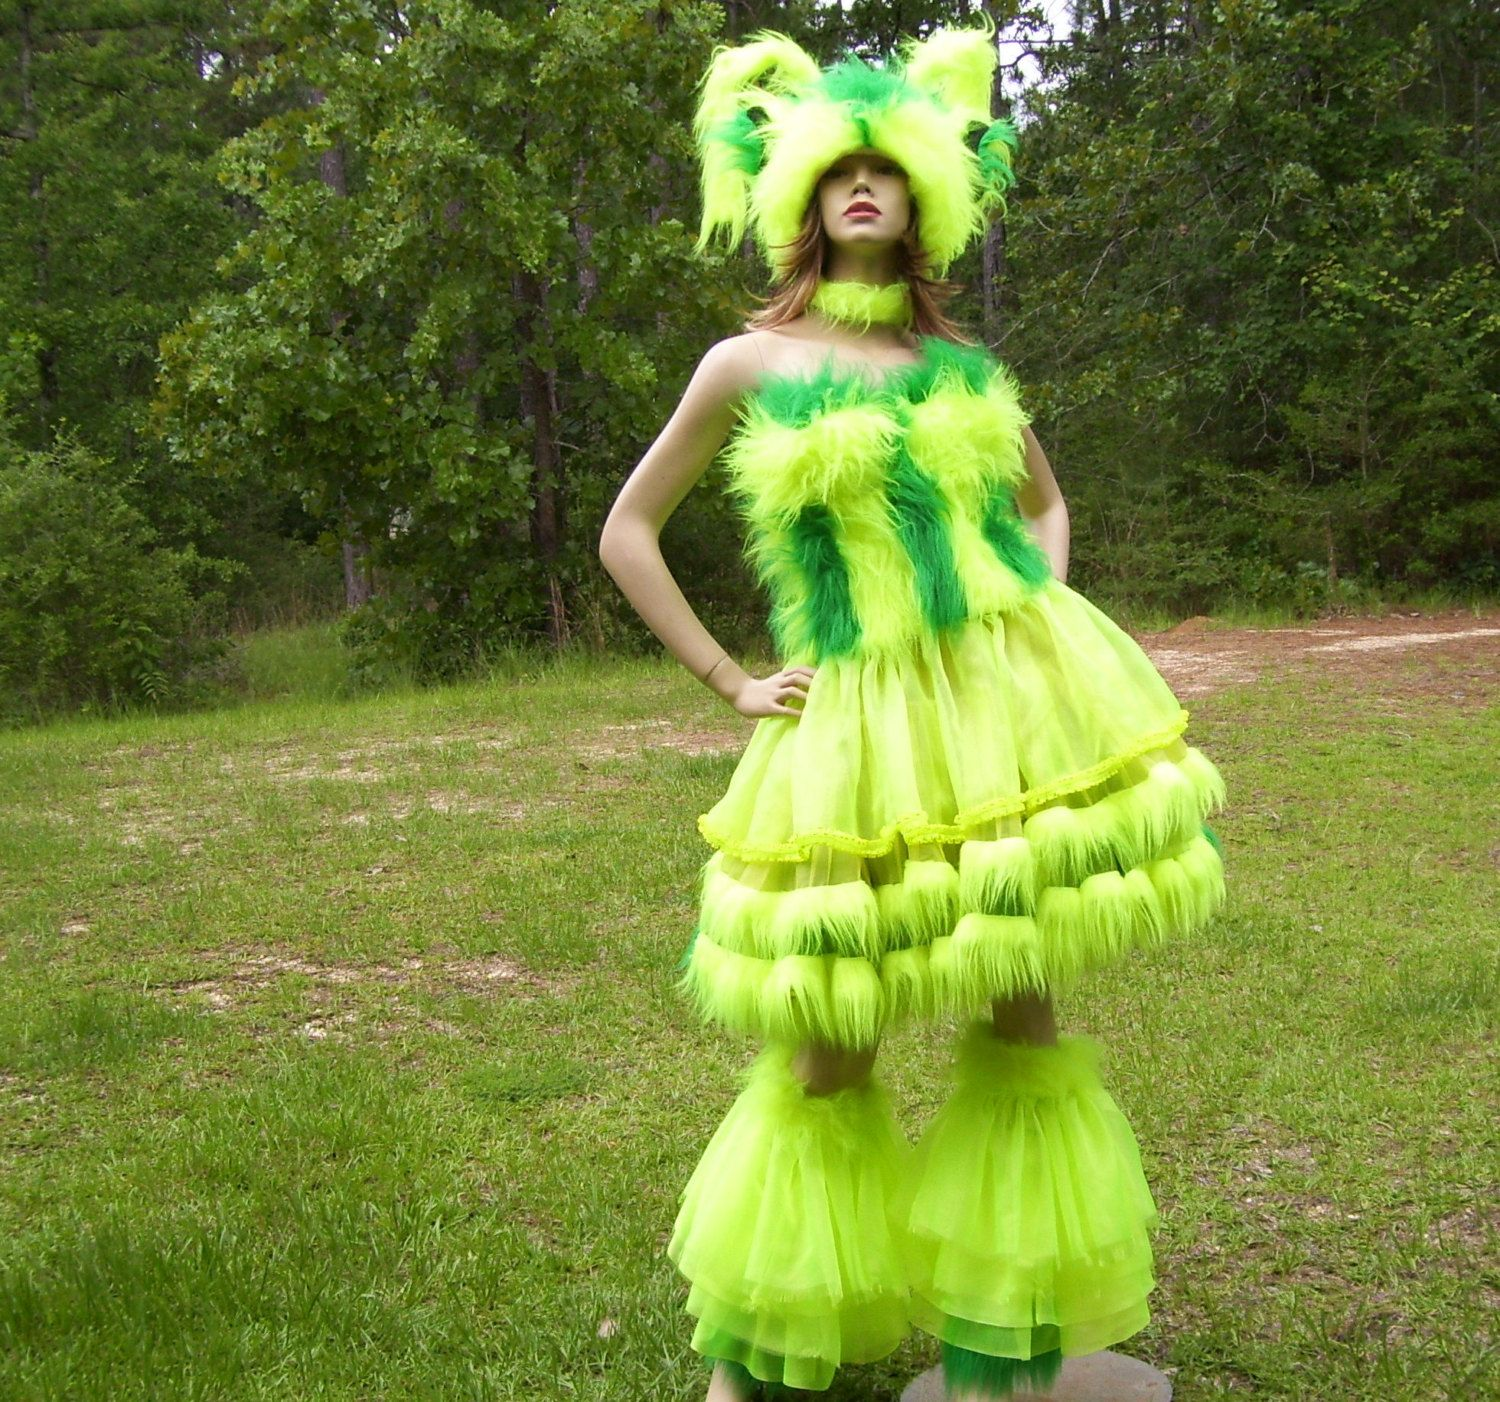 Neon Monster Costume Dress Fur Bustier Full Crinoline Fur Skirt Ruffles Yellow Green Day Glow Furry Hat Halloween Costume Adult L XL & Neon Monster Costume Dress Fur Bustier Full by avantegarb on Etsy ...